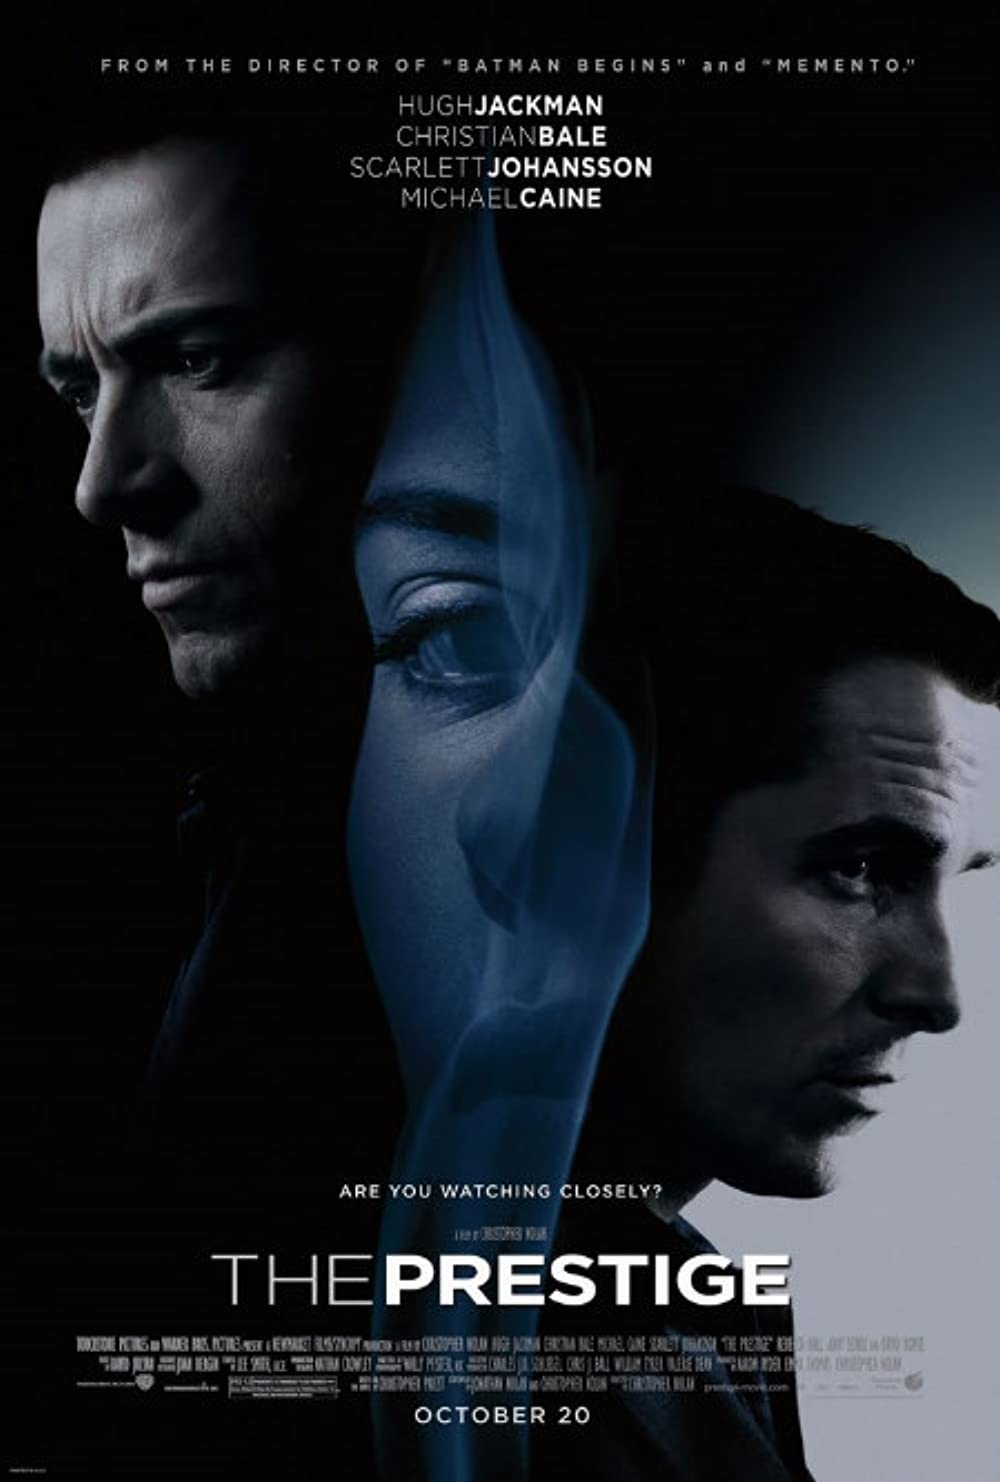 The Prestige 2006 Hindi Dual Audio 1080p BluRay ESubs 1.93GB Download